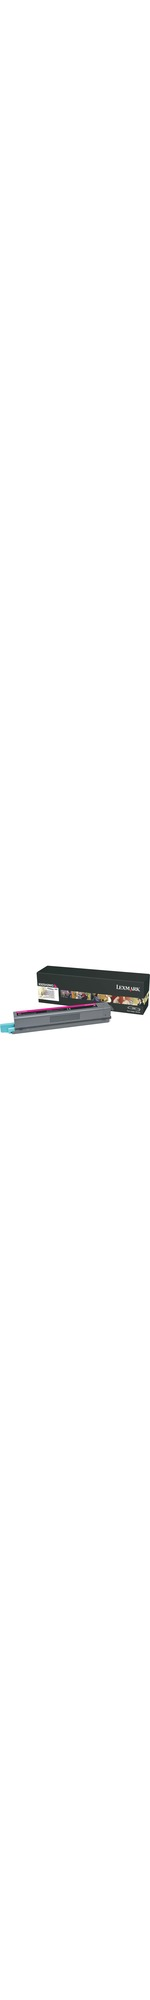 Lexmark X925H2MG Toner Cartridge - Magenta